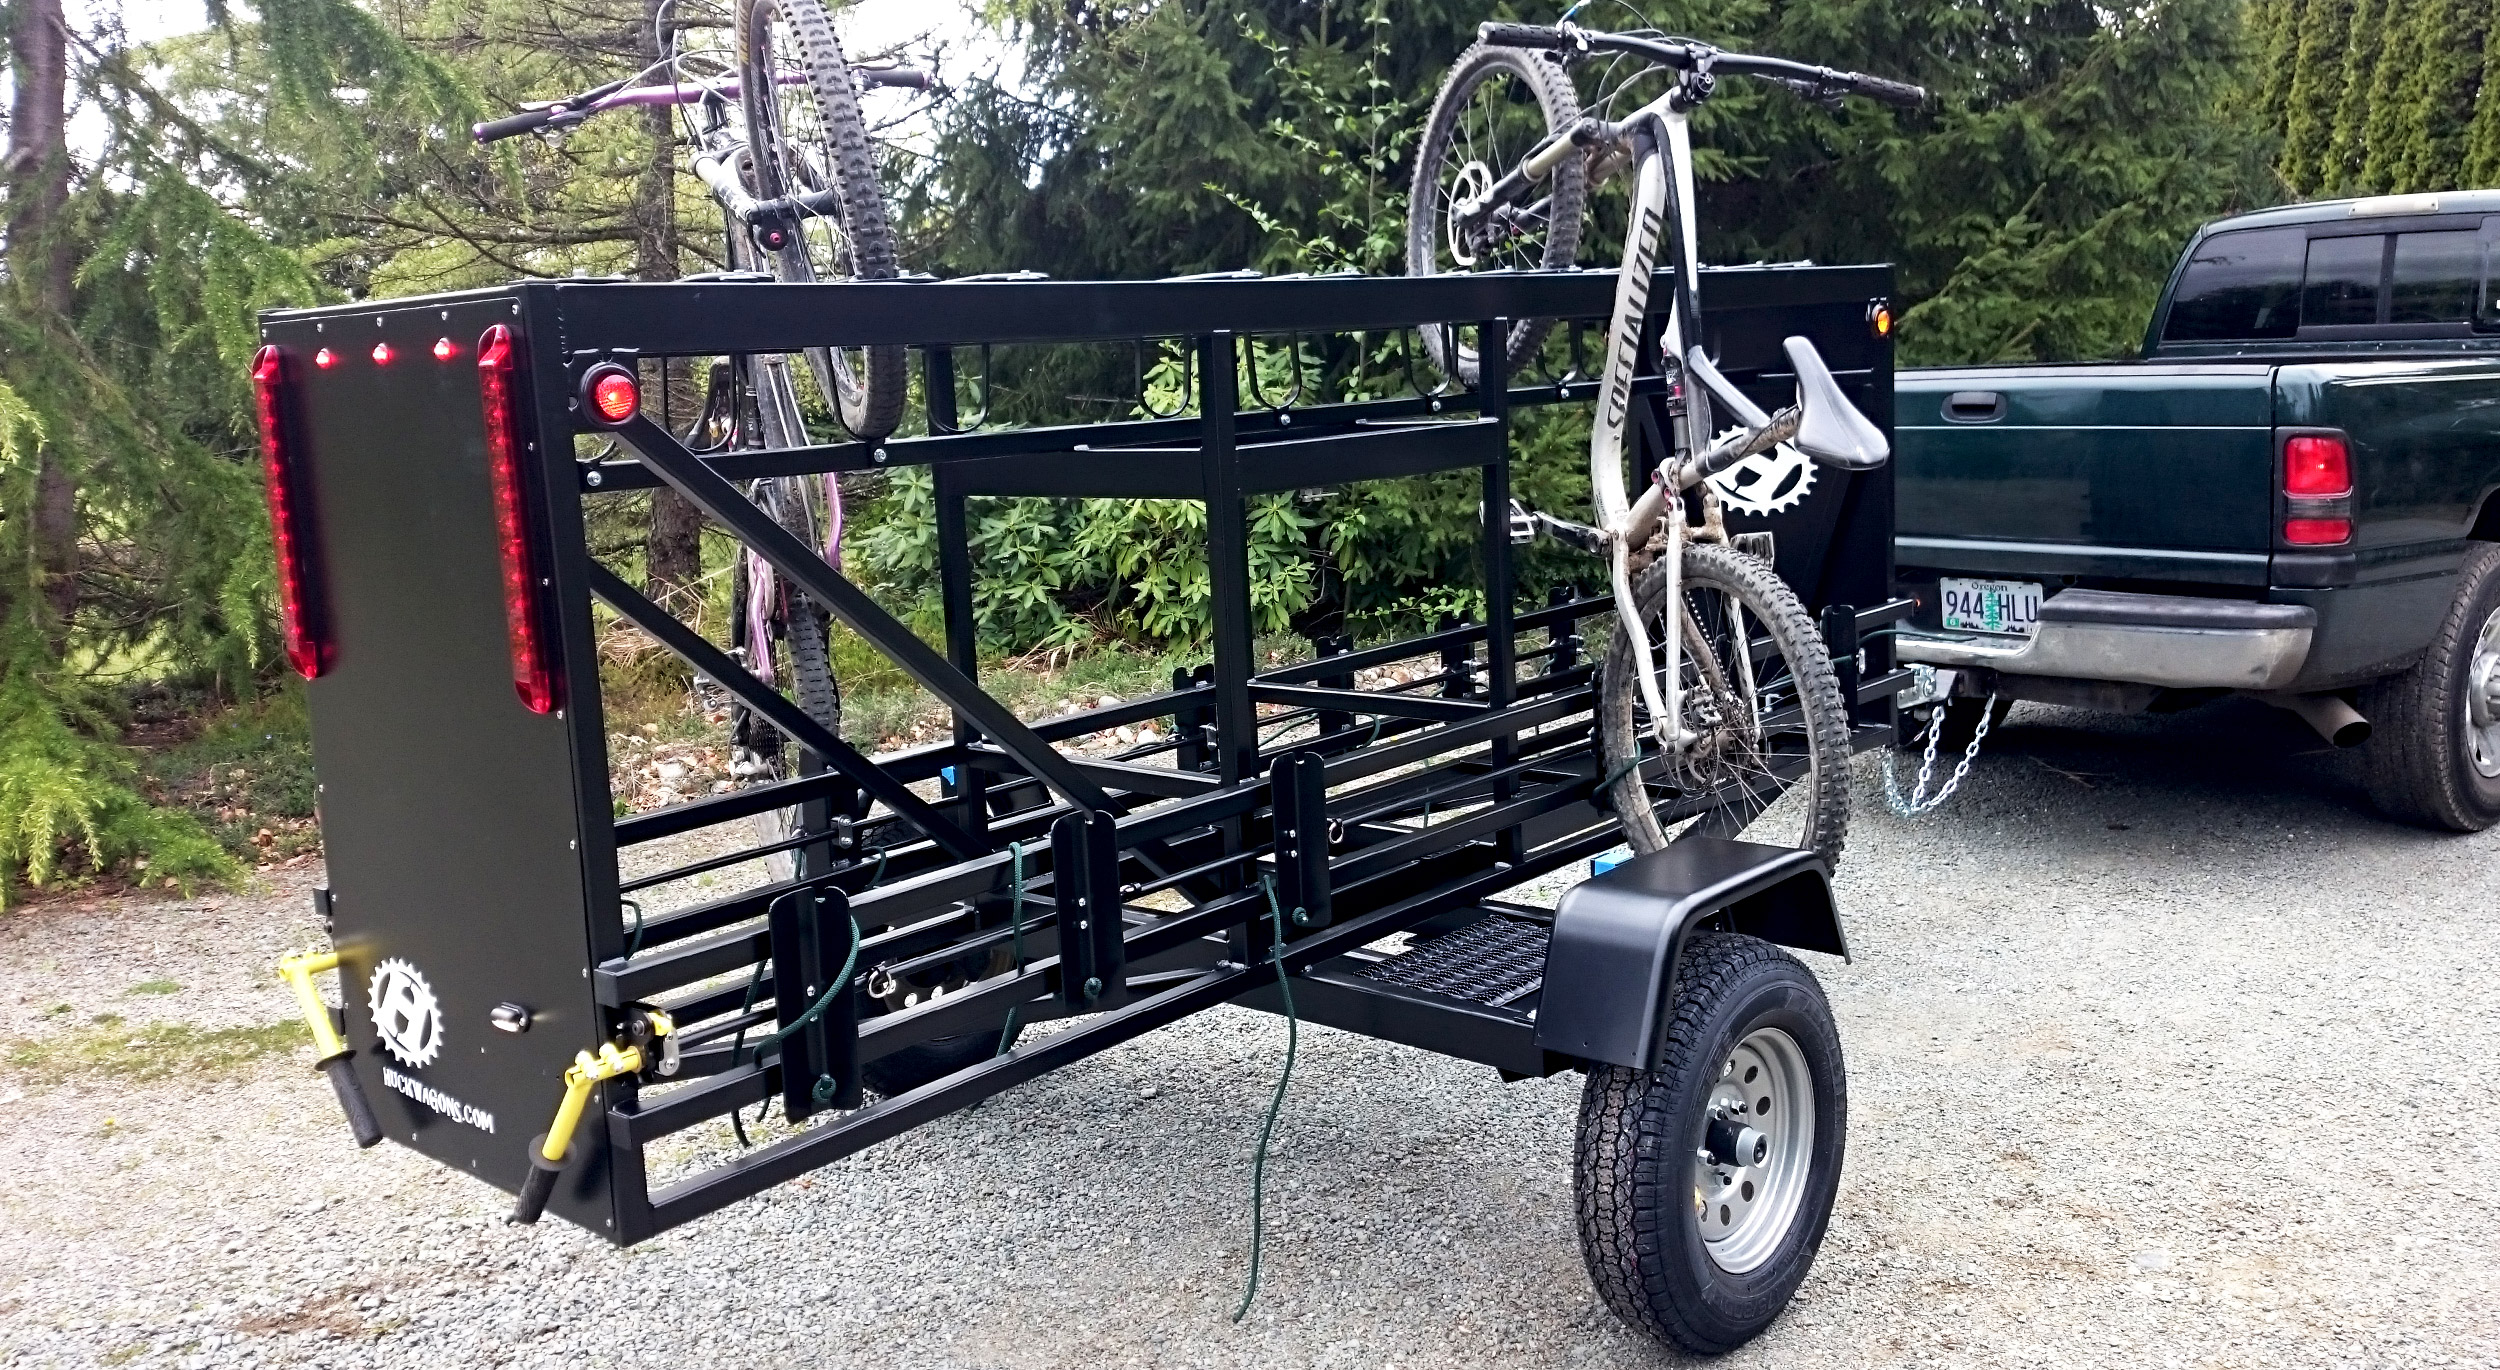 Medium Huckwagons Mountain Bike Shuttle Trailers ready to take on any bike hauling job